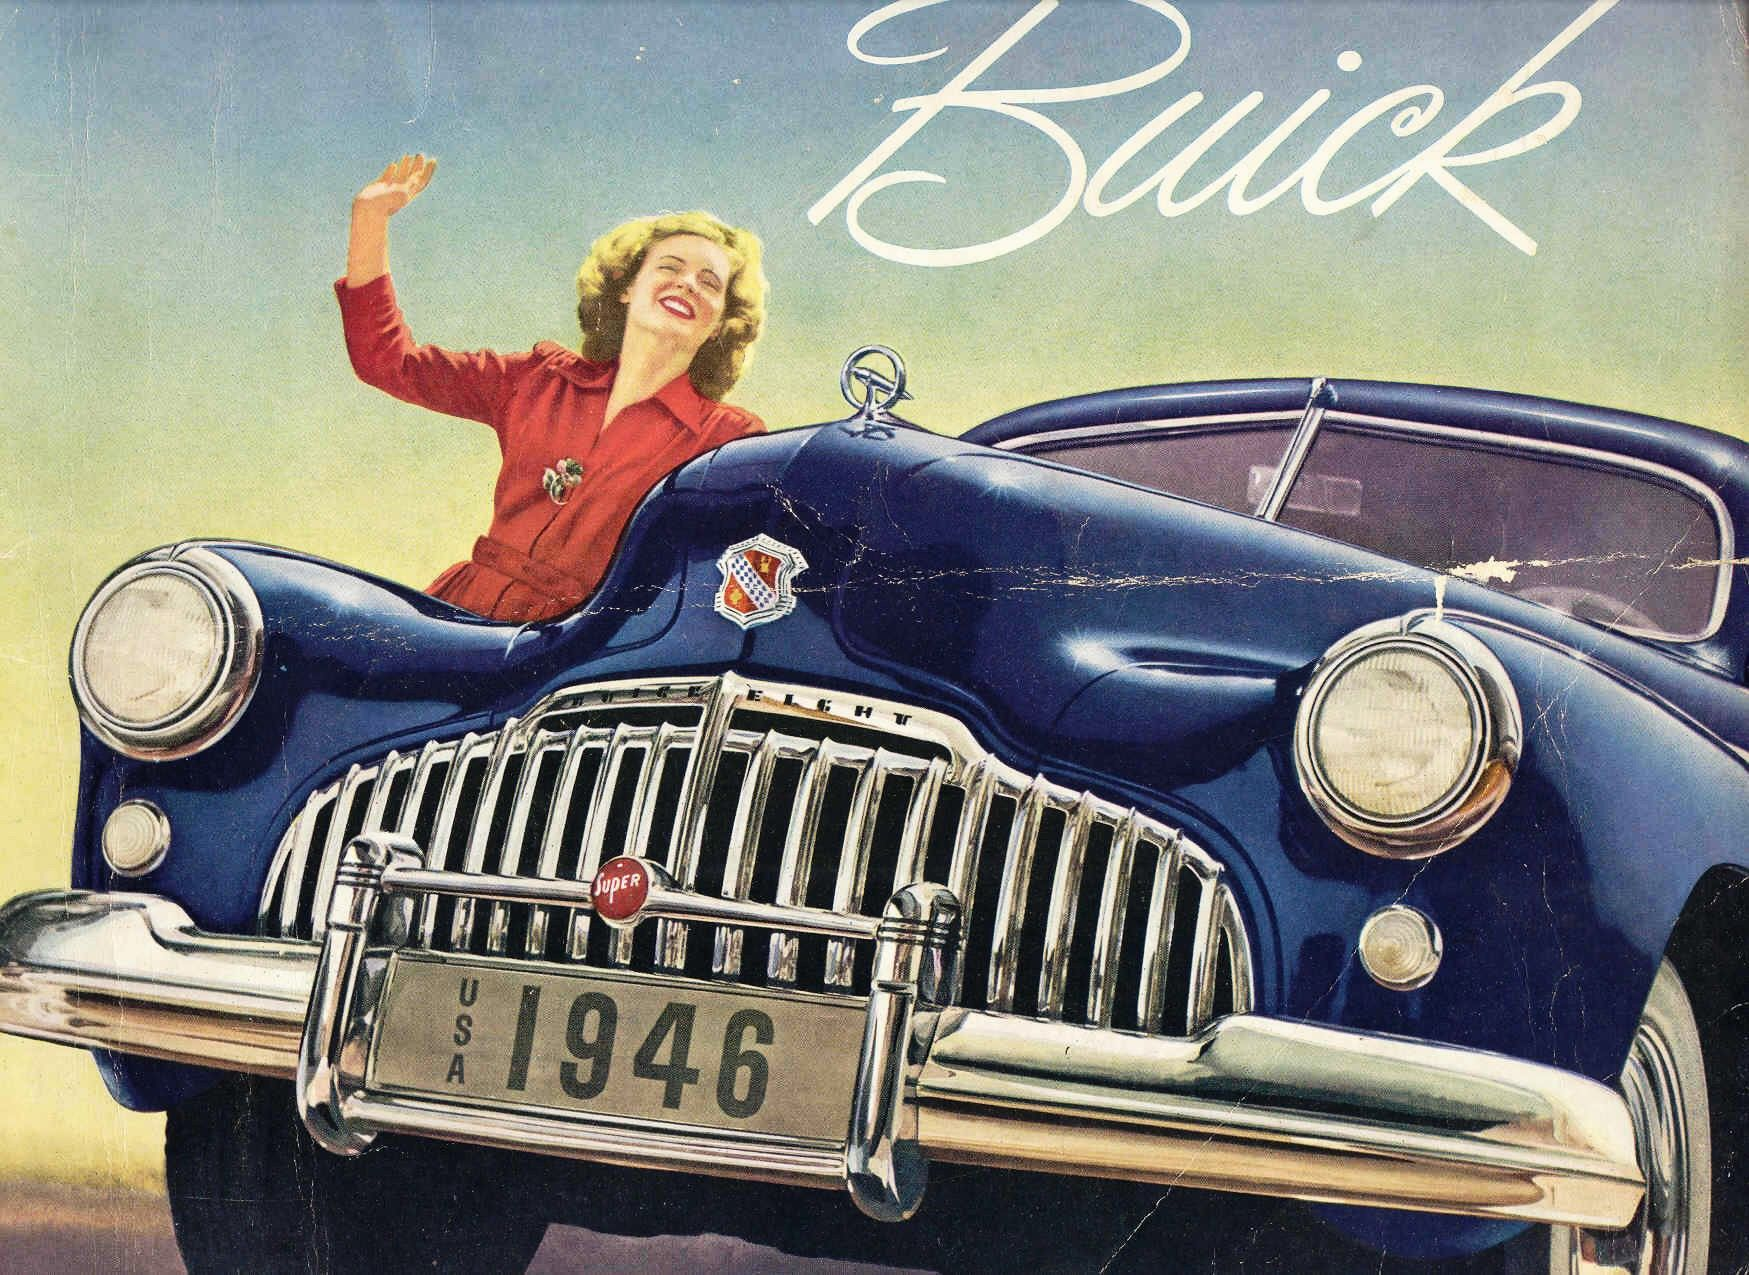 Hello Ladies Classic Car Brochure Art For Happy Women – Old Car Brochure